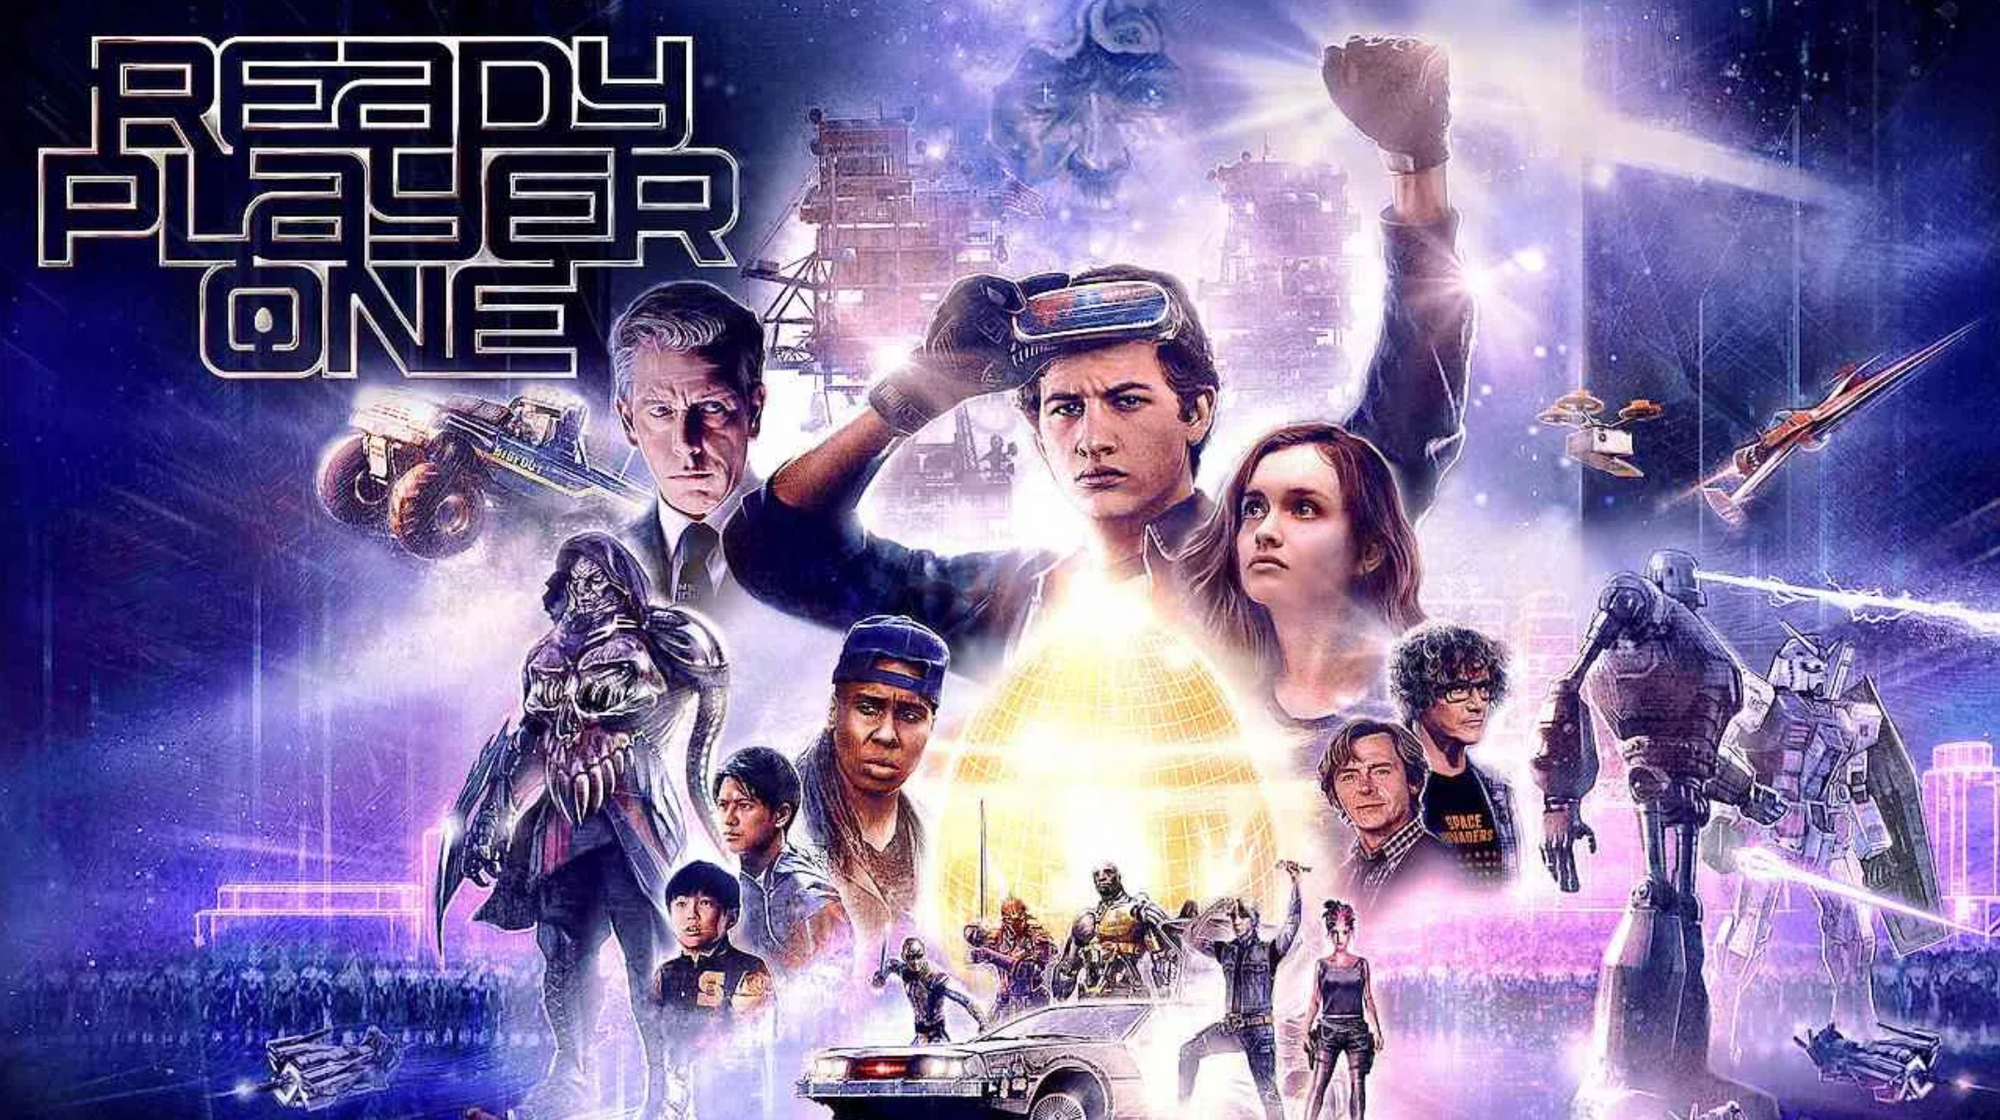 How to Watch Ready Player One on Netflix - Top 3 VPN Alternatives